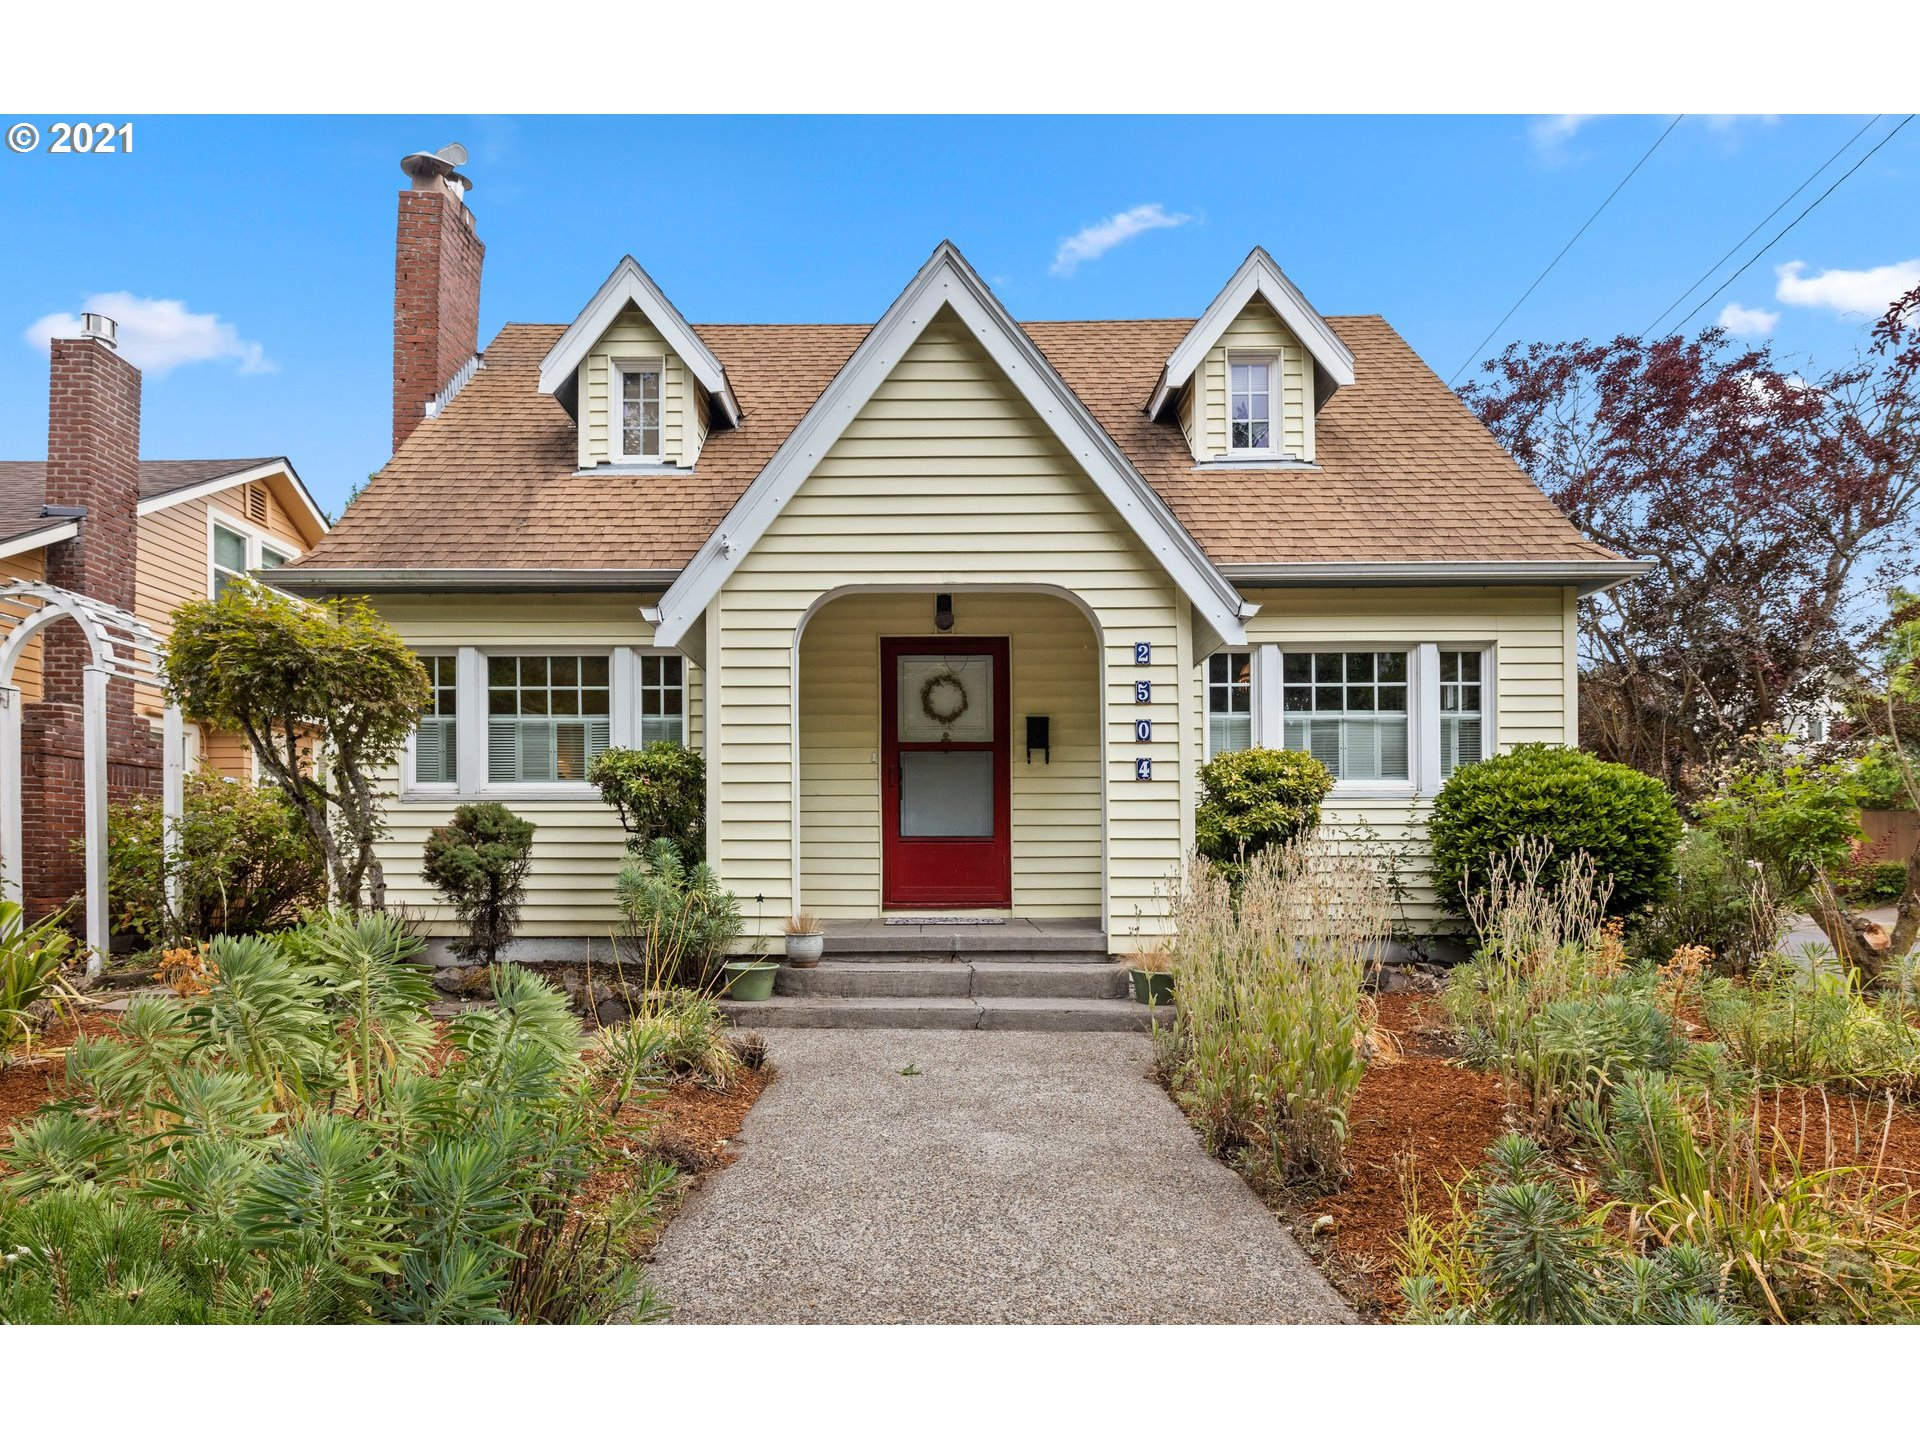 Vintage Cape Cod charmer in Premier location facing Grant Park. A walkers and bikers paradise close to the trendiest East-Side establishments. Home is in great shape and just needs a little vision to make it shine again. This amazing neighborhood will support all your improvements to add equity and build value. Original charm throughout with room to grow in the partially finished basement (possible ADU?) & spacious attic space with bonus room. Large corner lot with rare oversized 2 car garage!